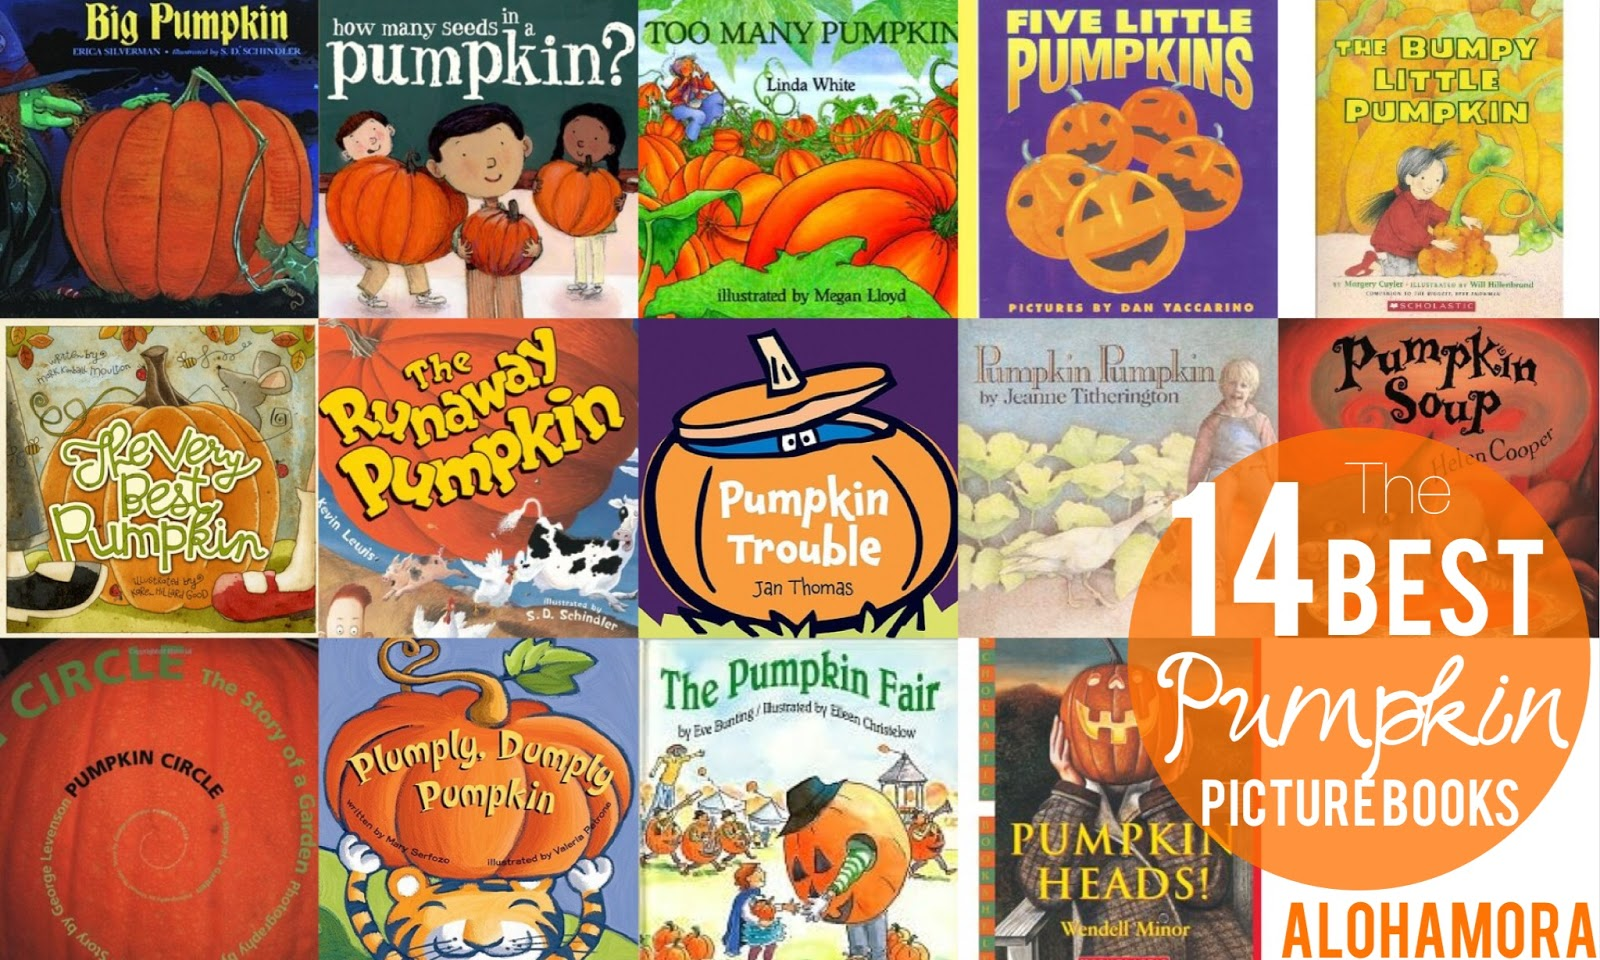 Alohamora Open A Book The 14 Best Pumpkin Picture Books